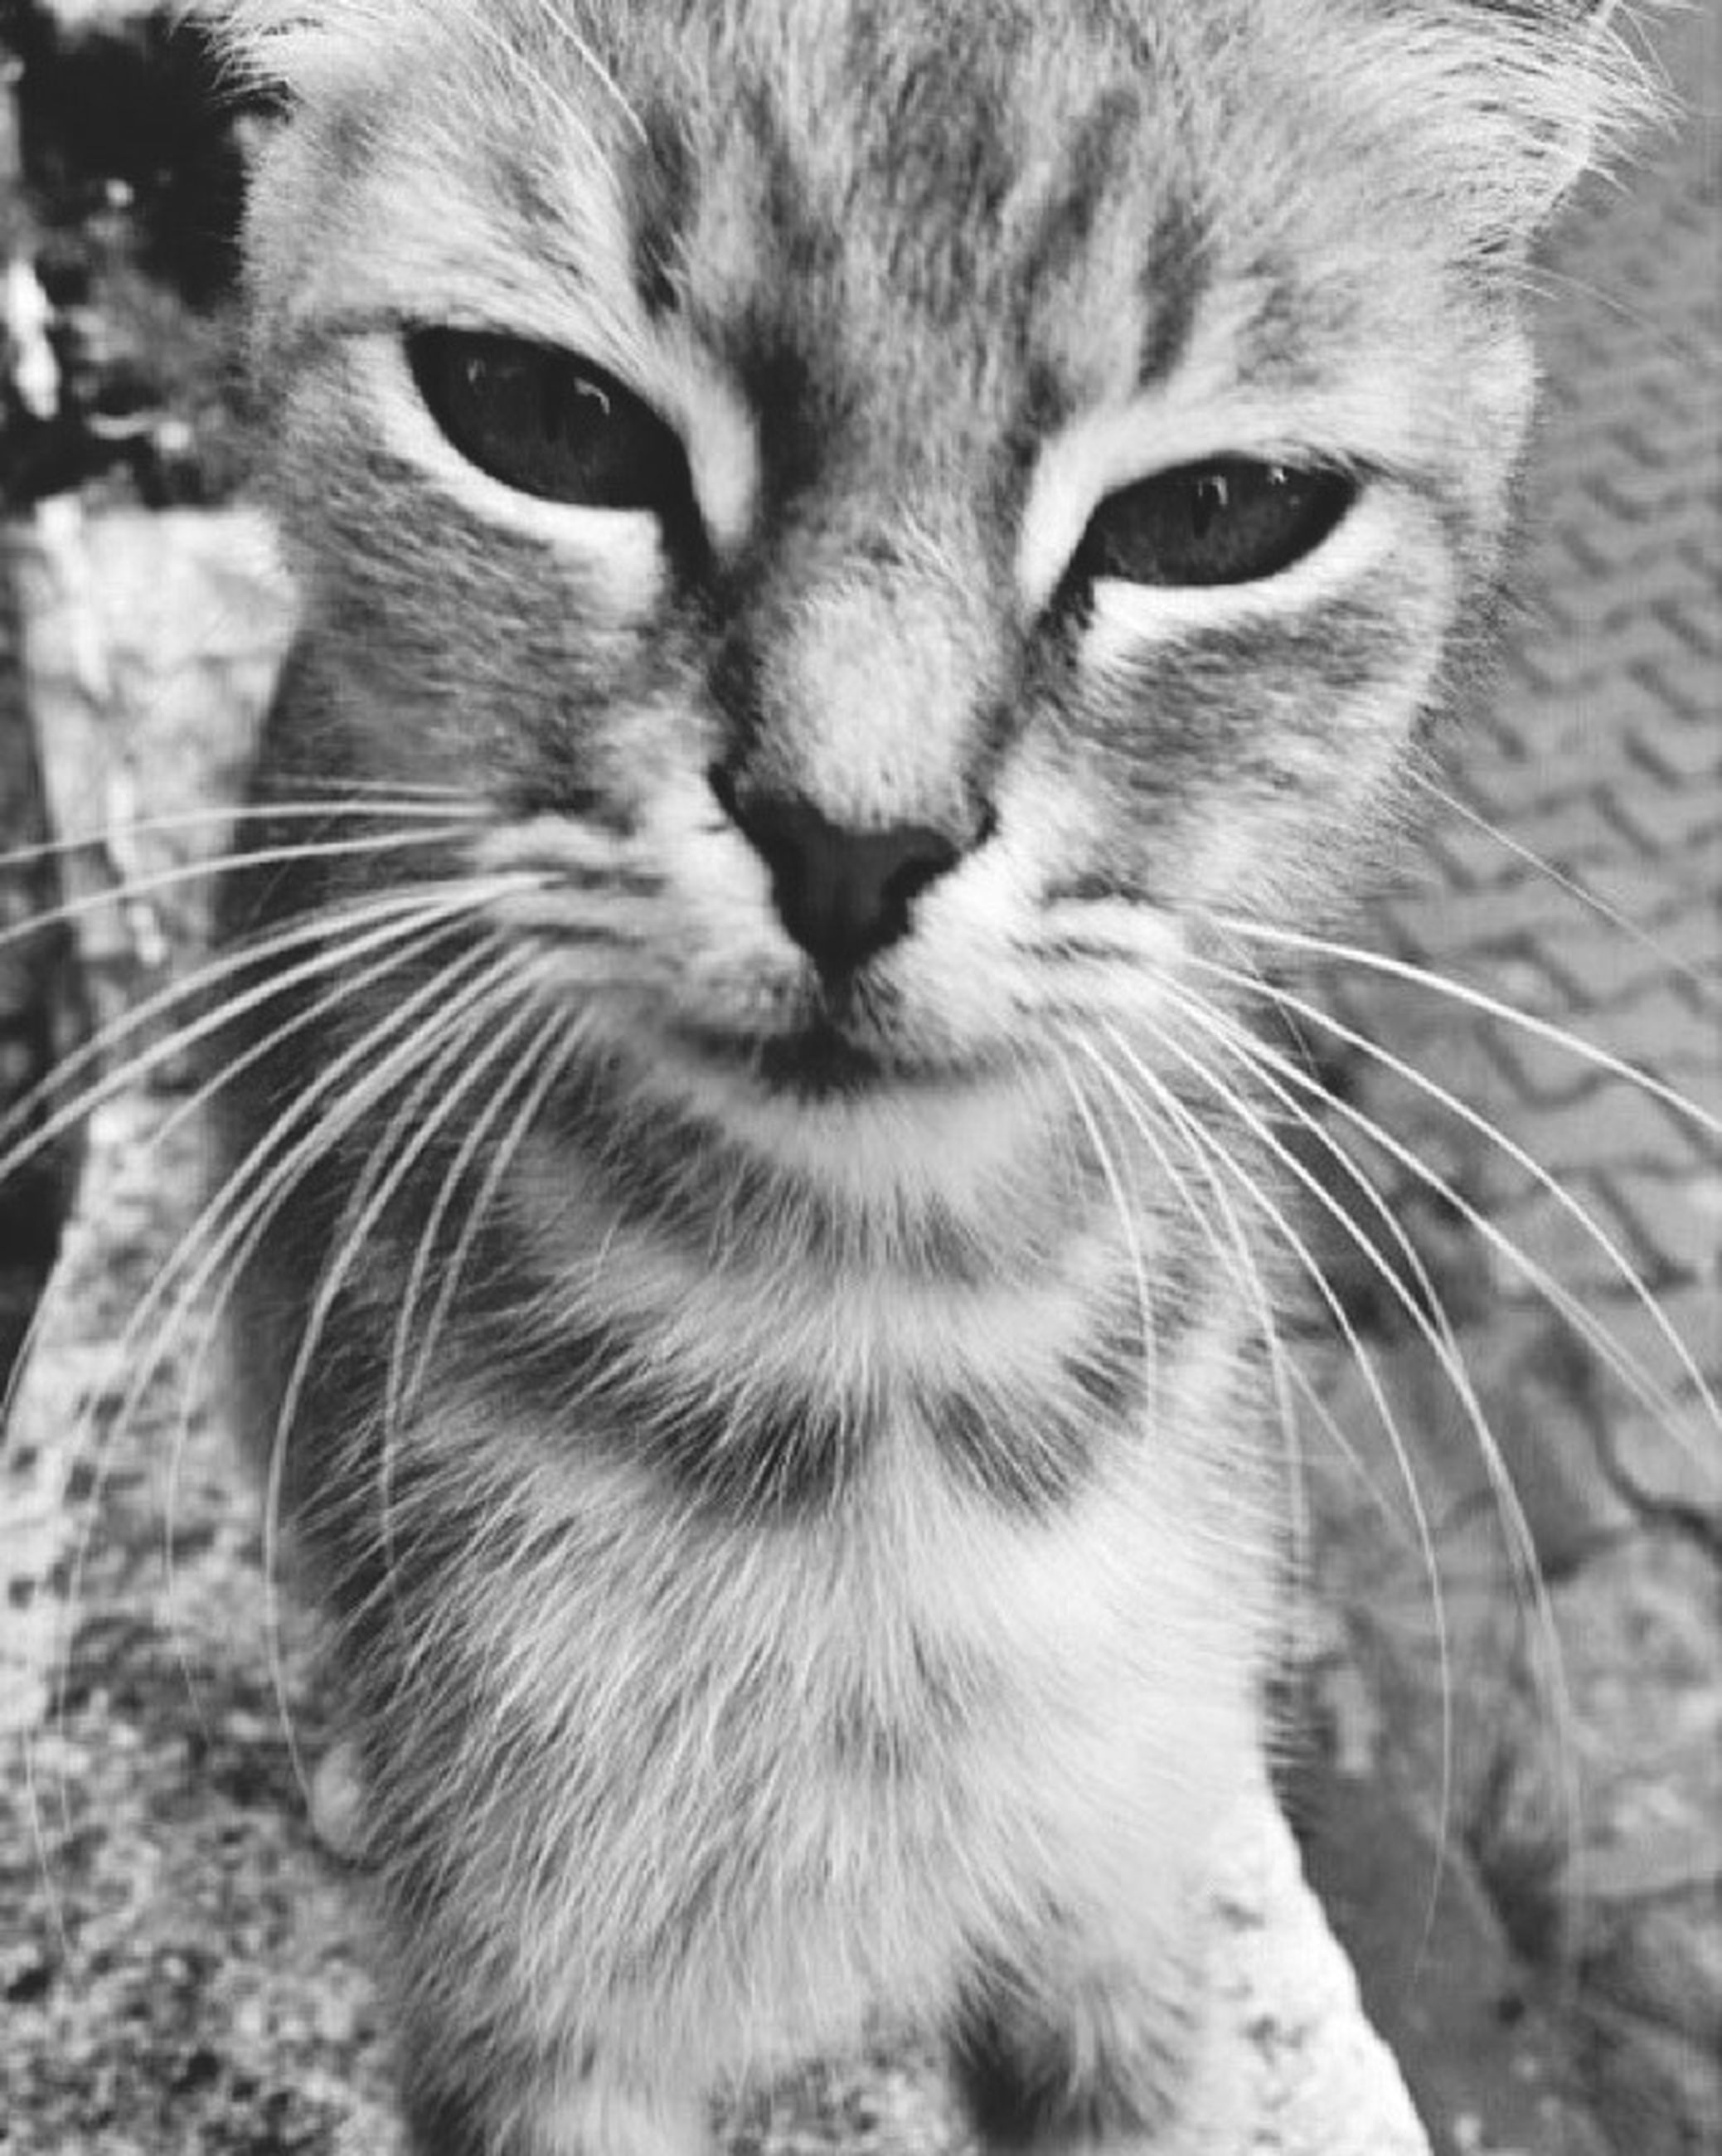 one animal, animal themes, mammal, pets, domestic animals, domestic cat, whisker, cat, feline, close-up, portrait, animal head, looking at camera, focus on foreground, animal eye, animal body part, animal hair, no people, front view